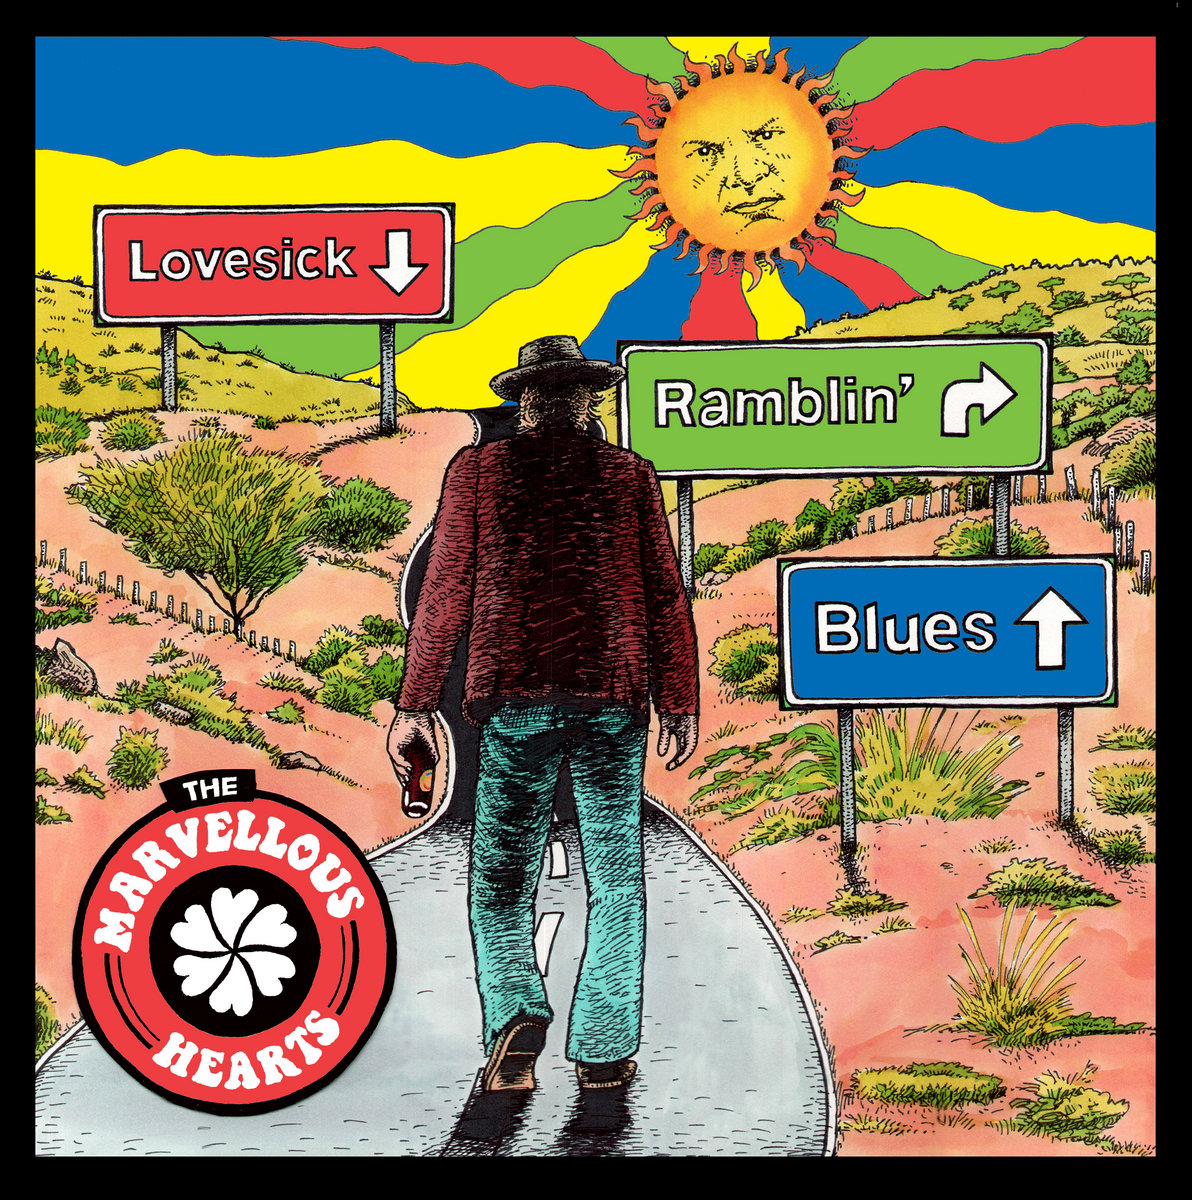 The Lovesick Ramblin Blues by The Marvellous Hearts